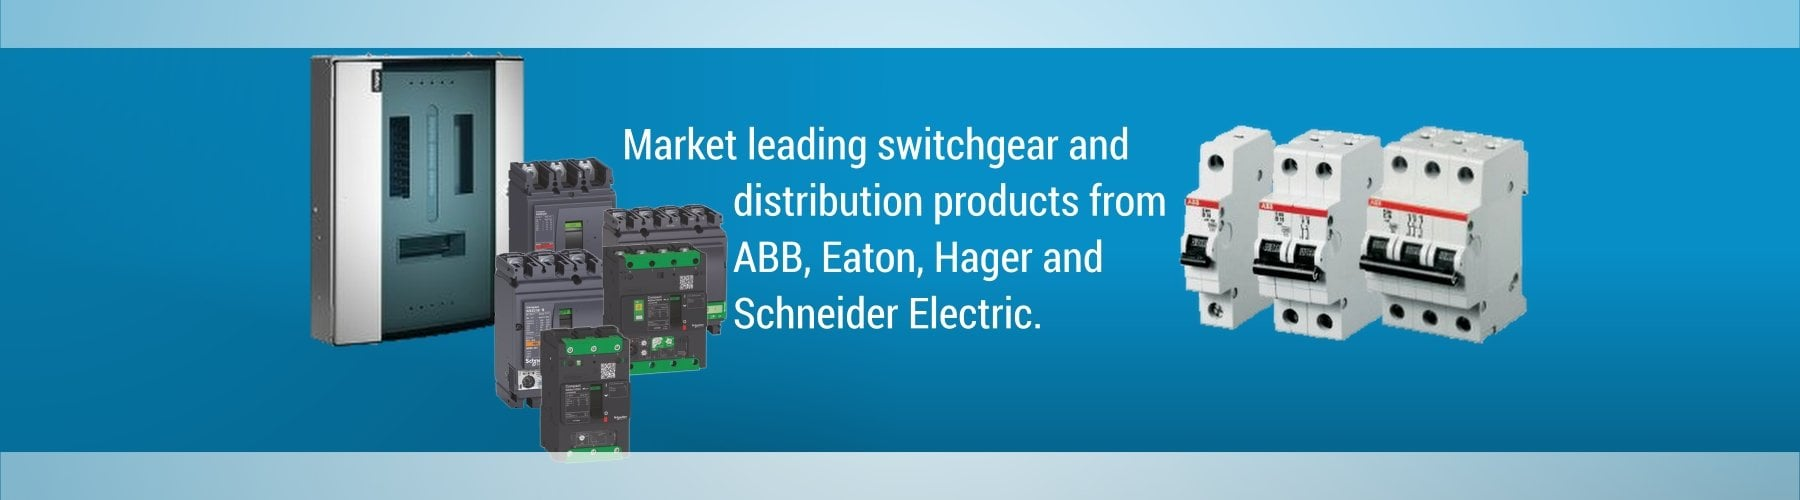 Switchgear & Distribution banner